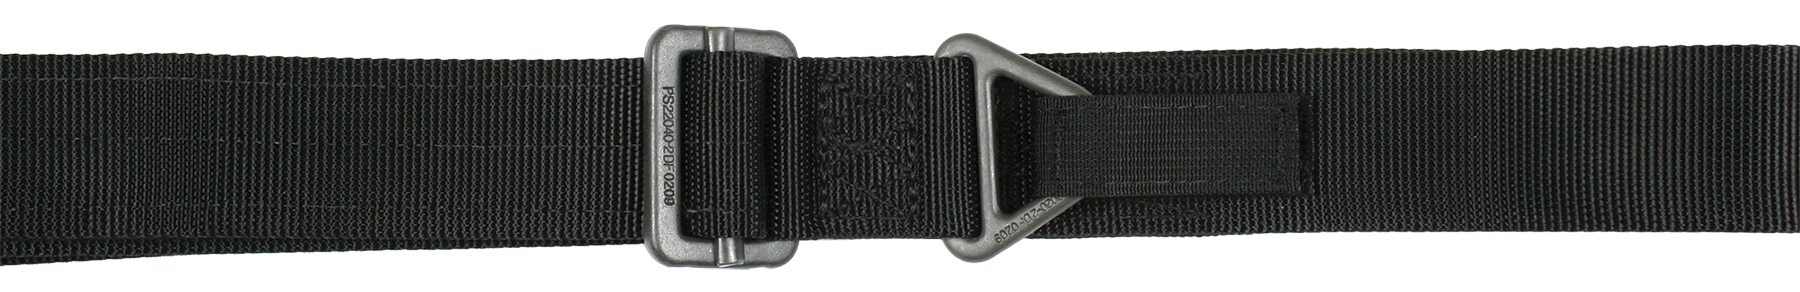 BLACKHAWK!® CQB Riggers Belt - Large - 41